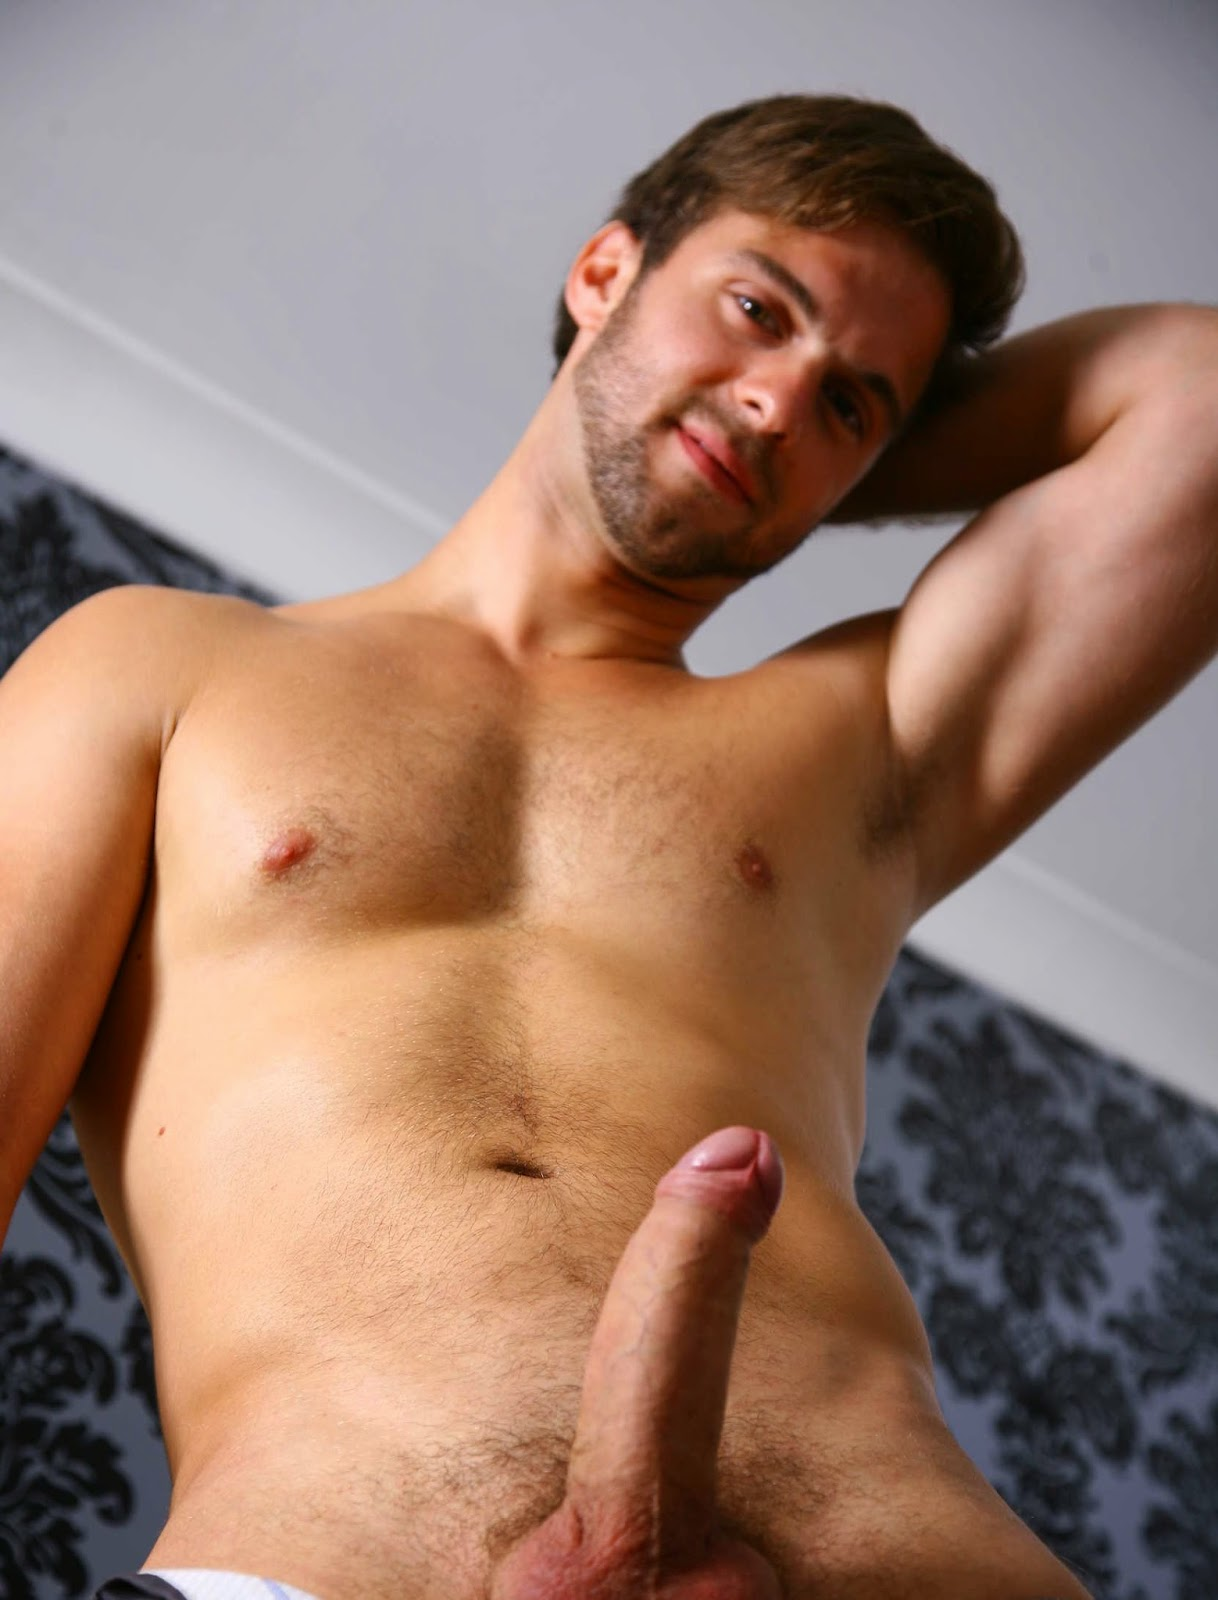 mexico gay escorts gay escort fuck